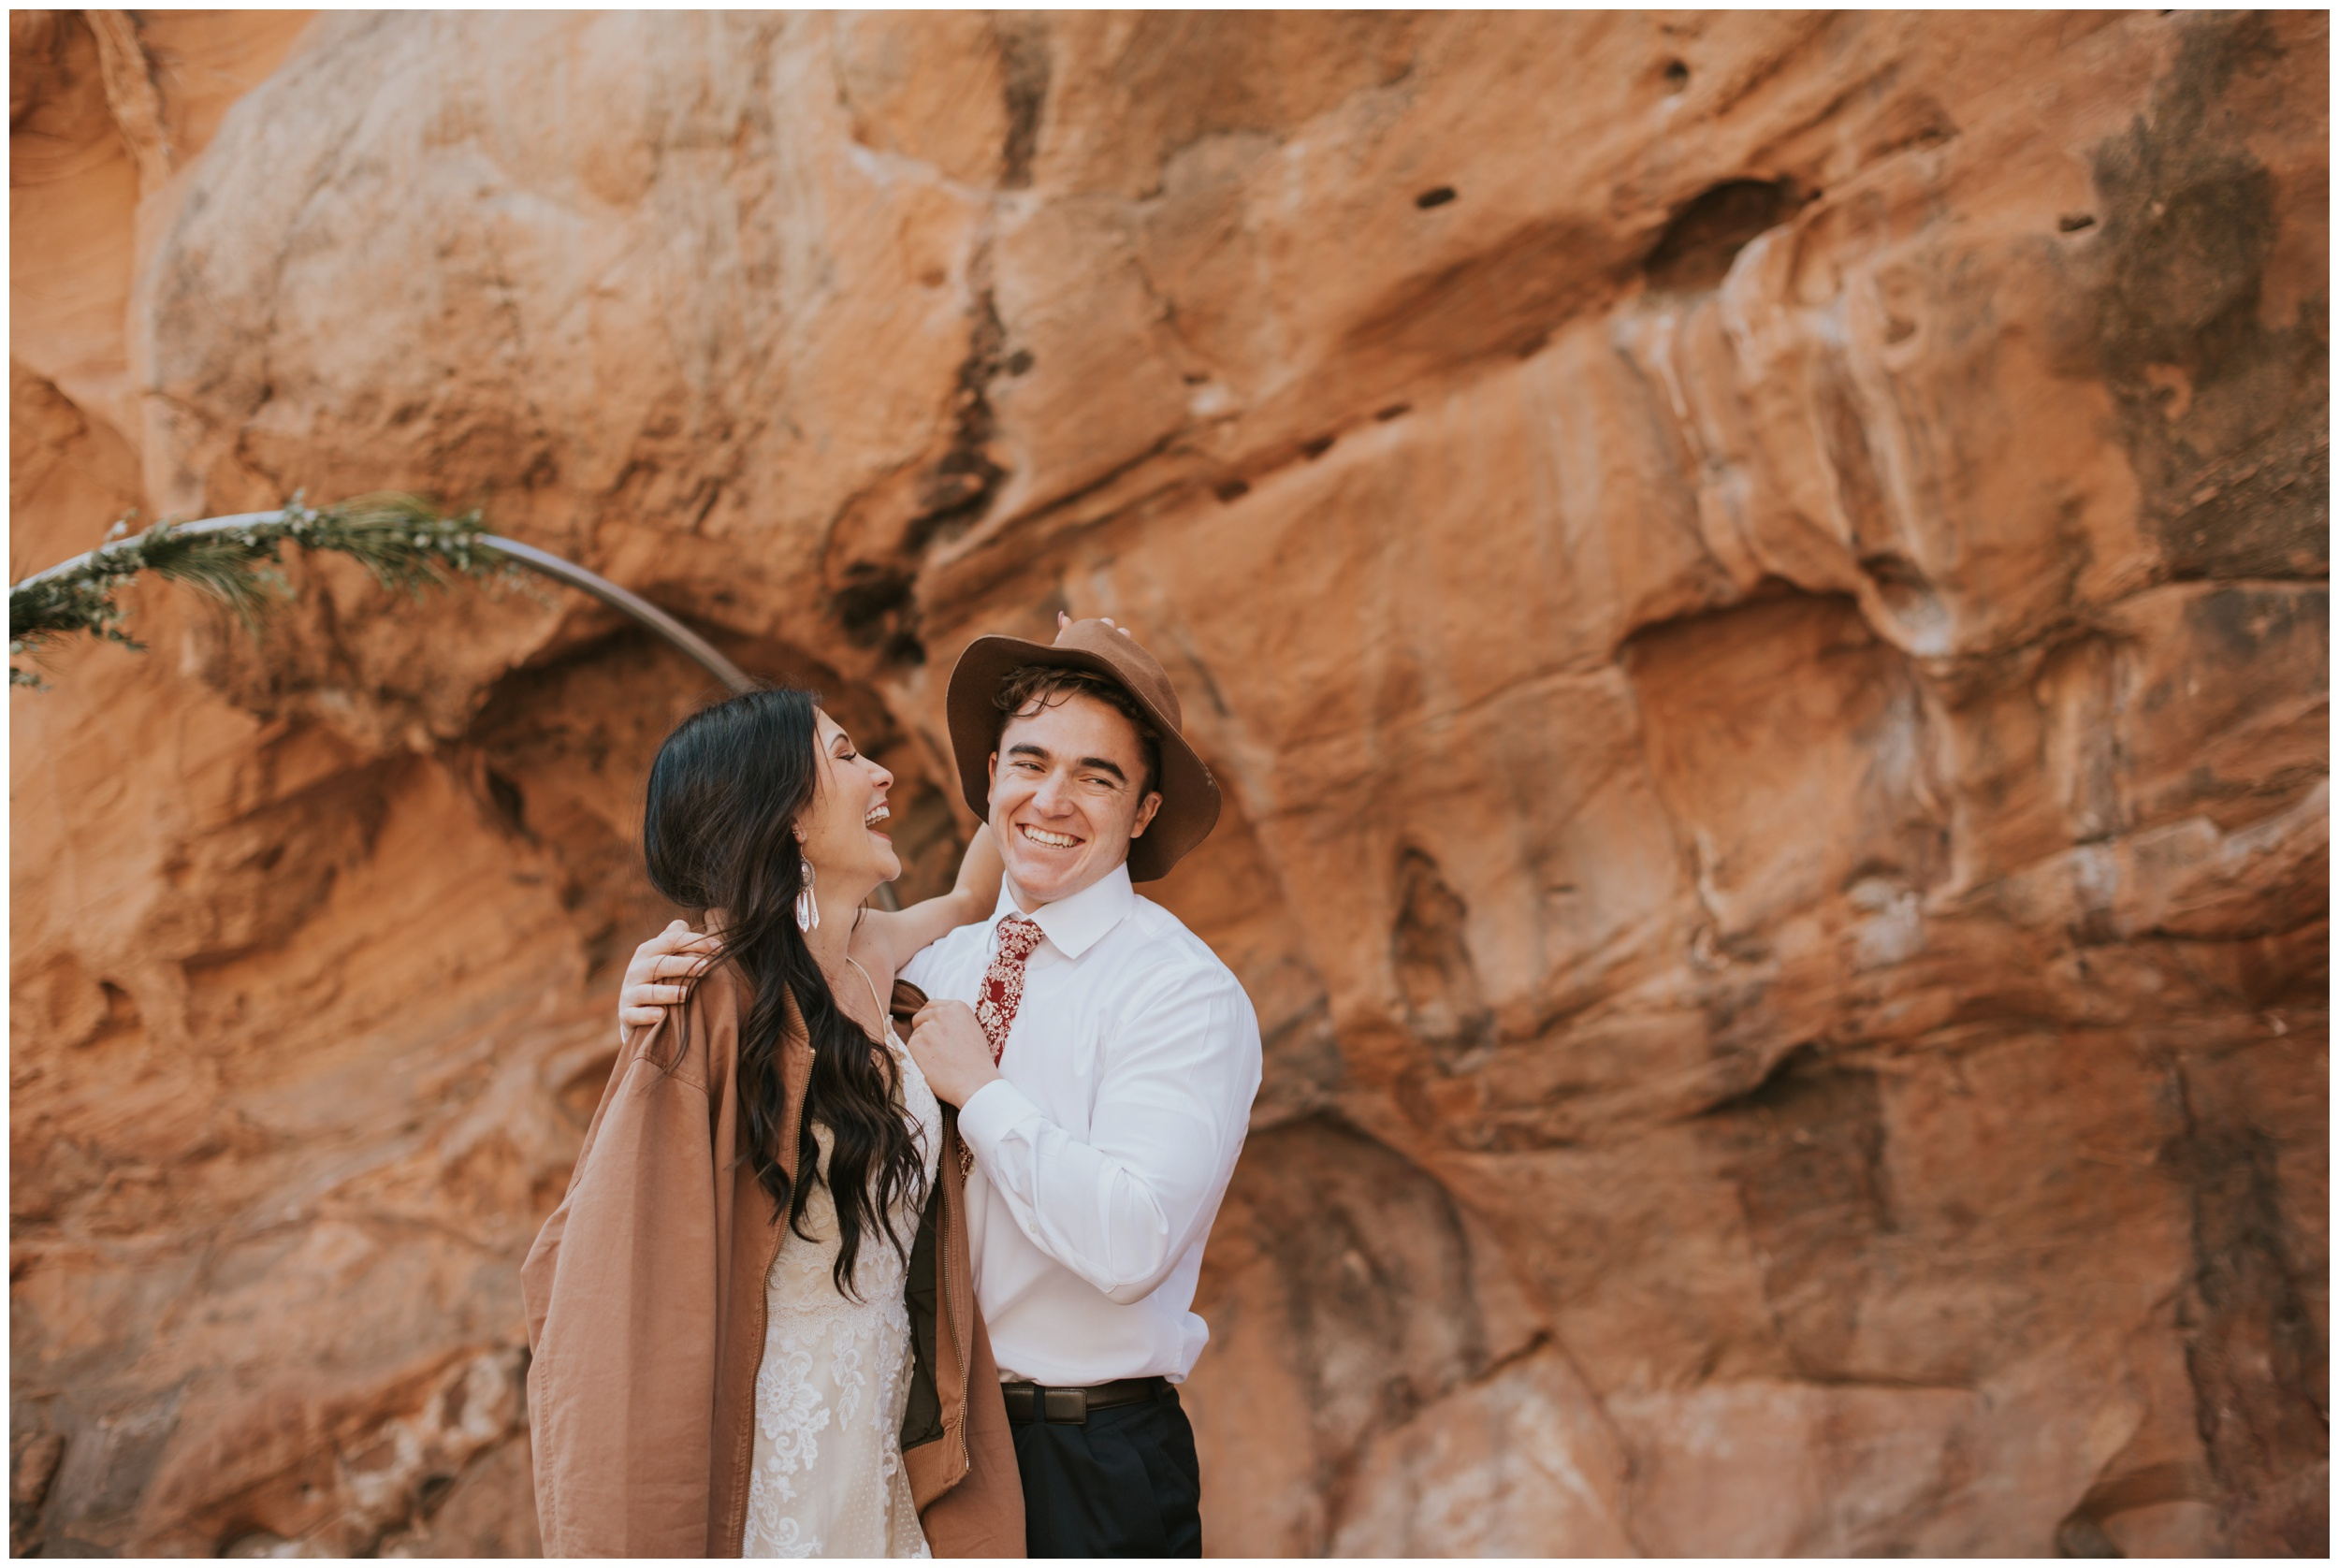 redrockutah-idahophotographer-utahphotographer-wedding-46.jpg